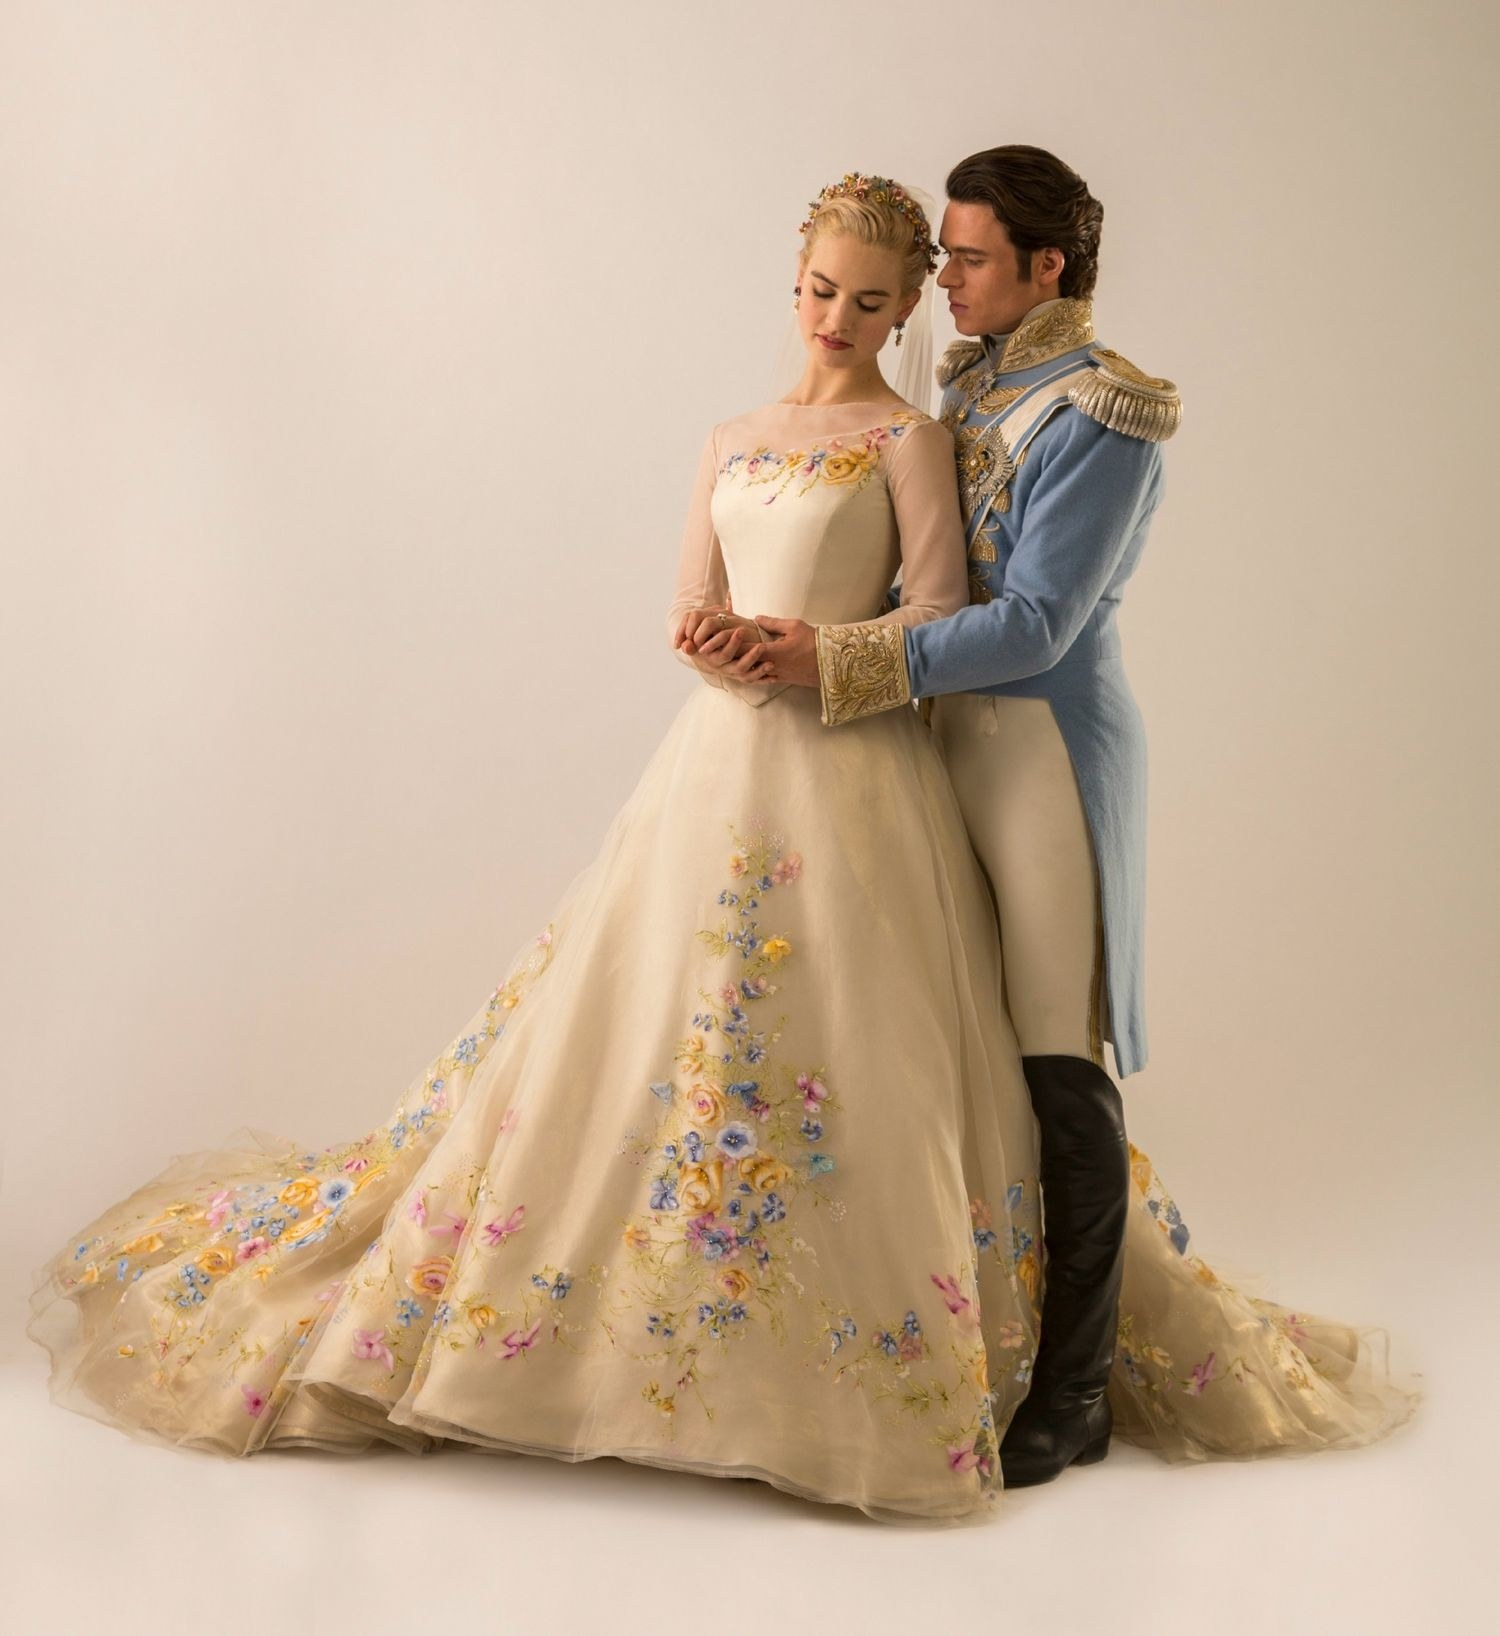 cinderella wedding dresses photo - 1